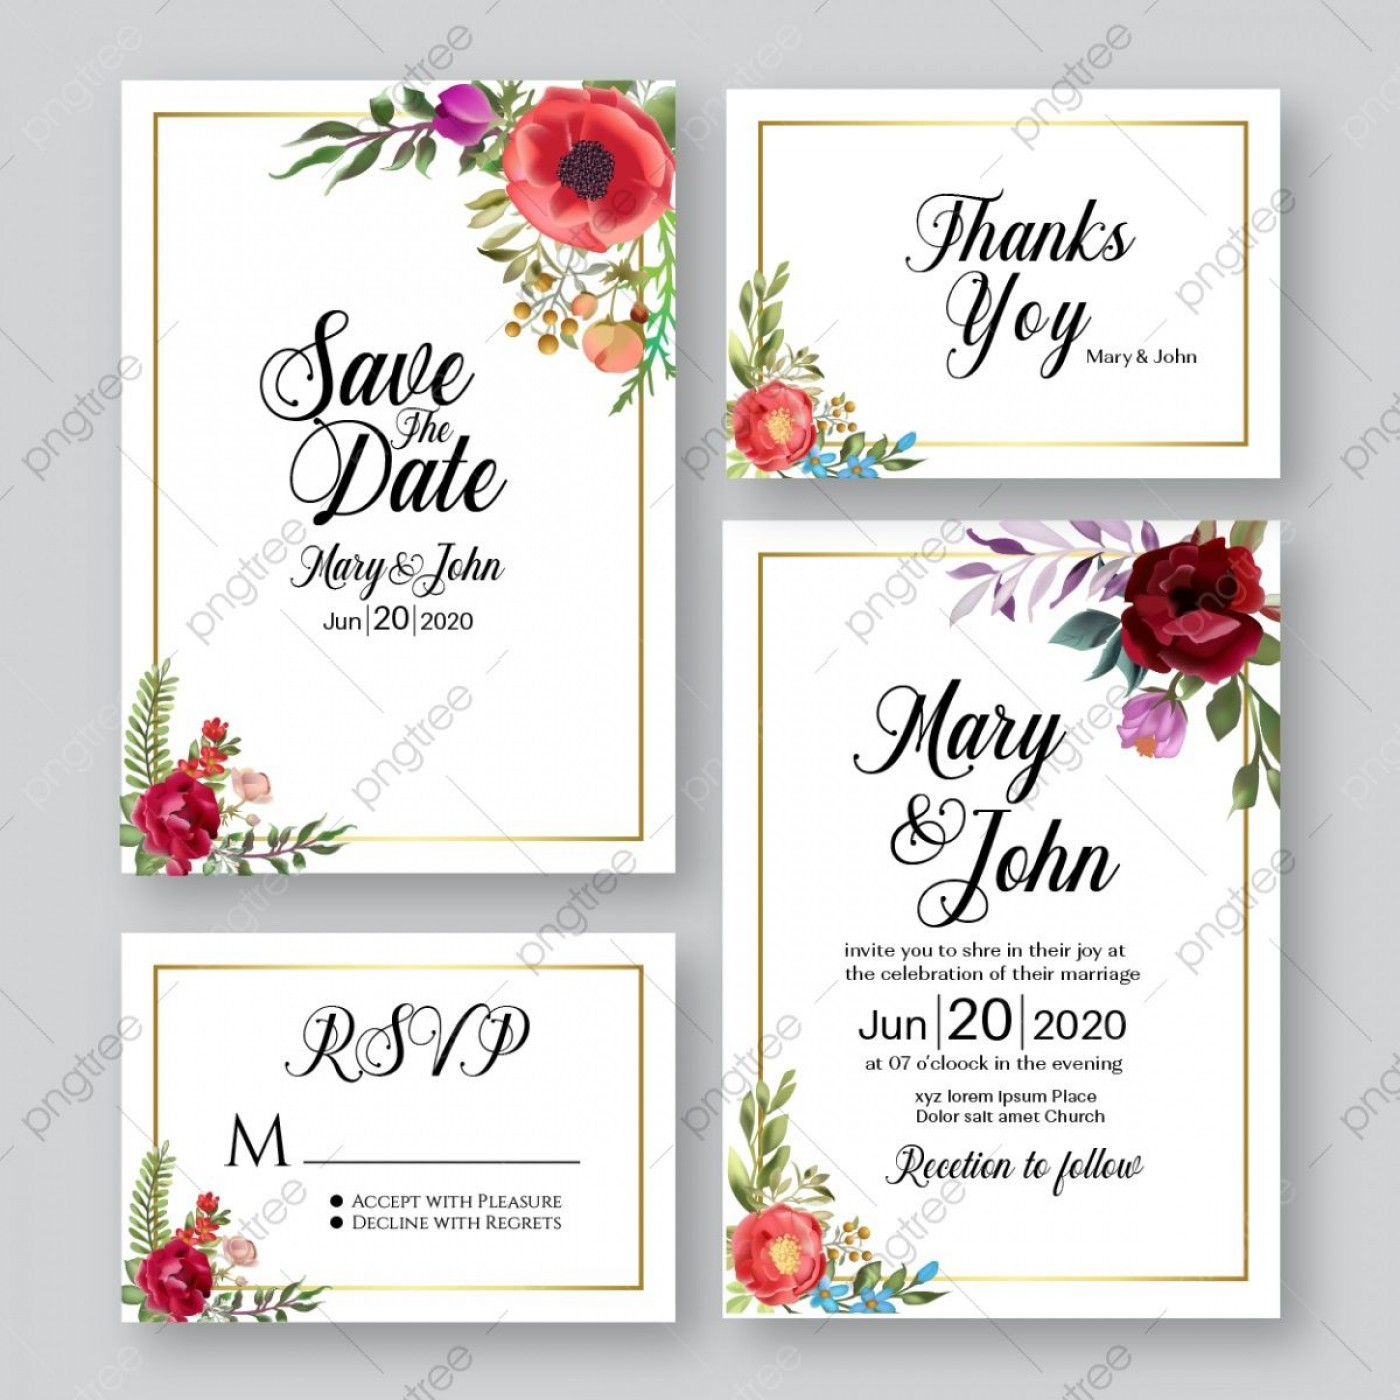 009 Awesome Free Download Invitation Card Design Inspiration  Birthday Party Blank Wedding Template Software1400